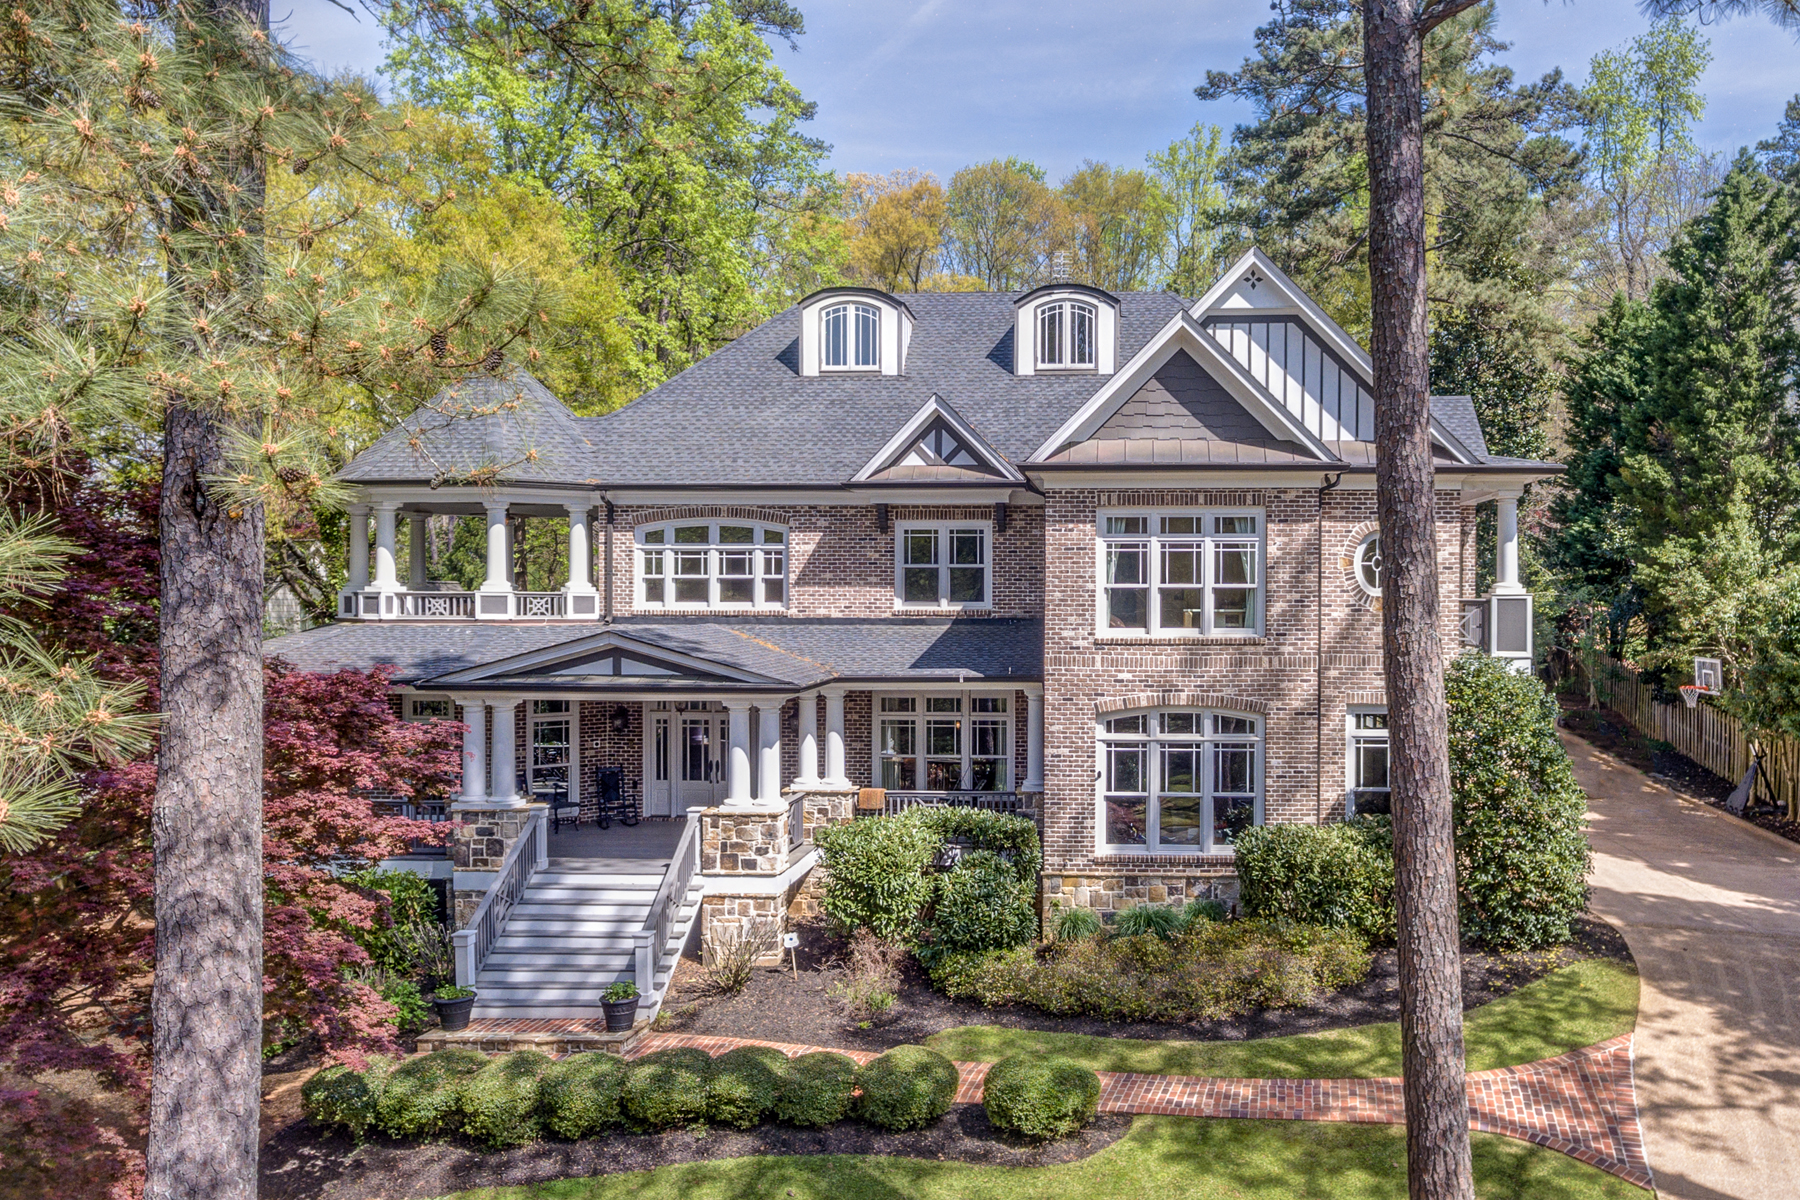 Maison unifamiliale pour l Vente à Beautiful Custom Home On Secluded One Acre Lot In Brookhaven 4650 Club Valley Dr Atlanta, Georgia 30319 États-Unis